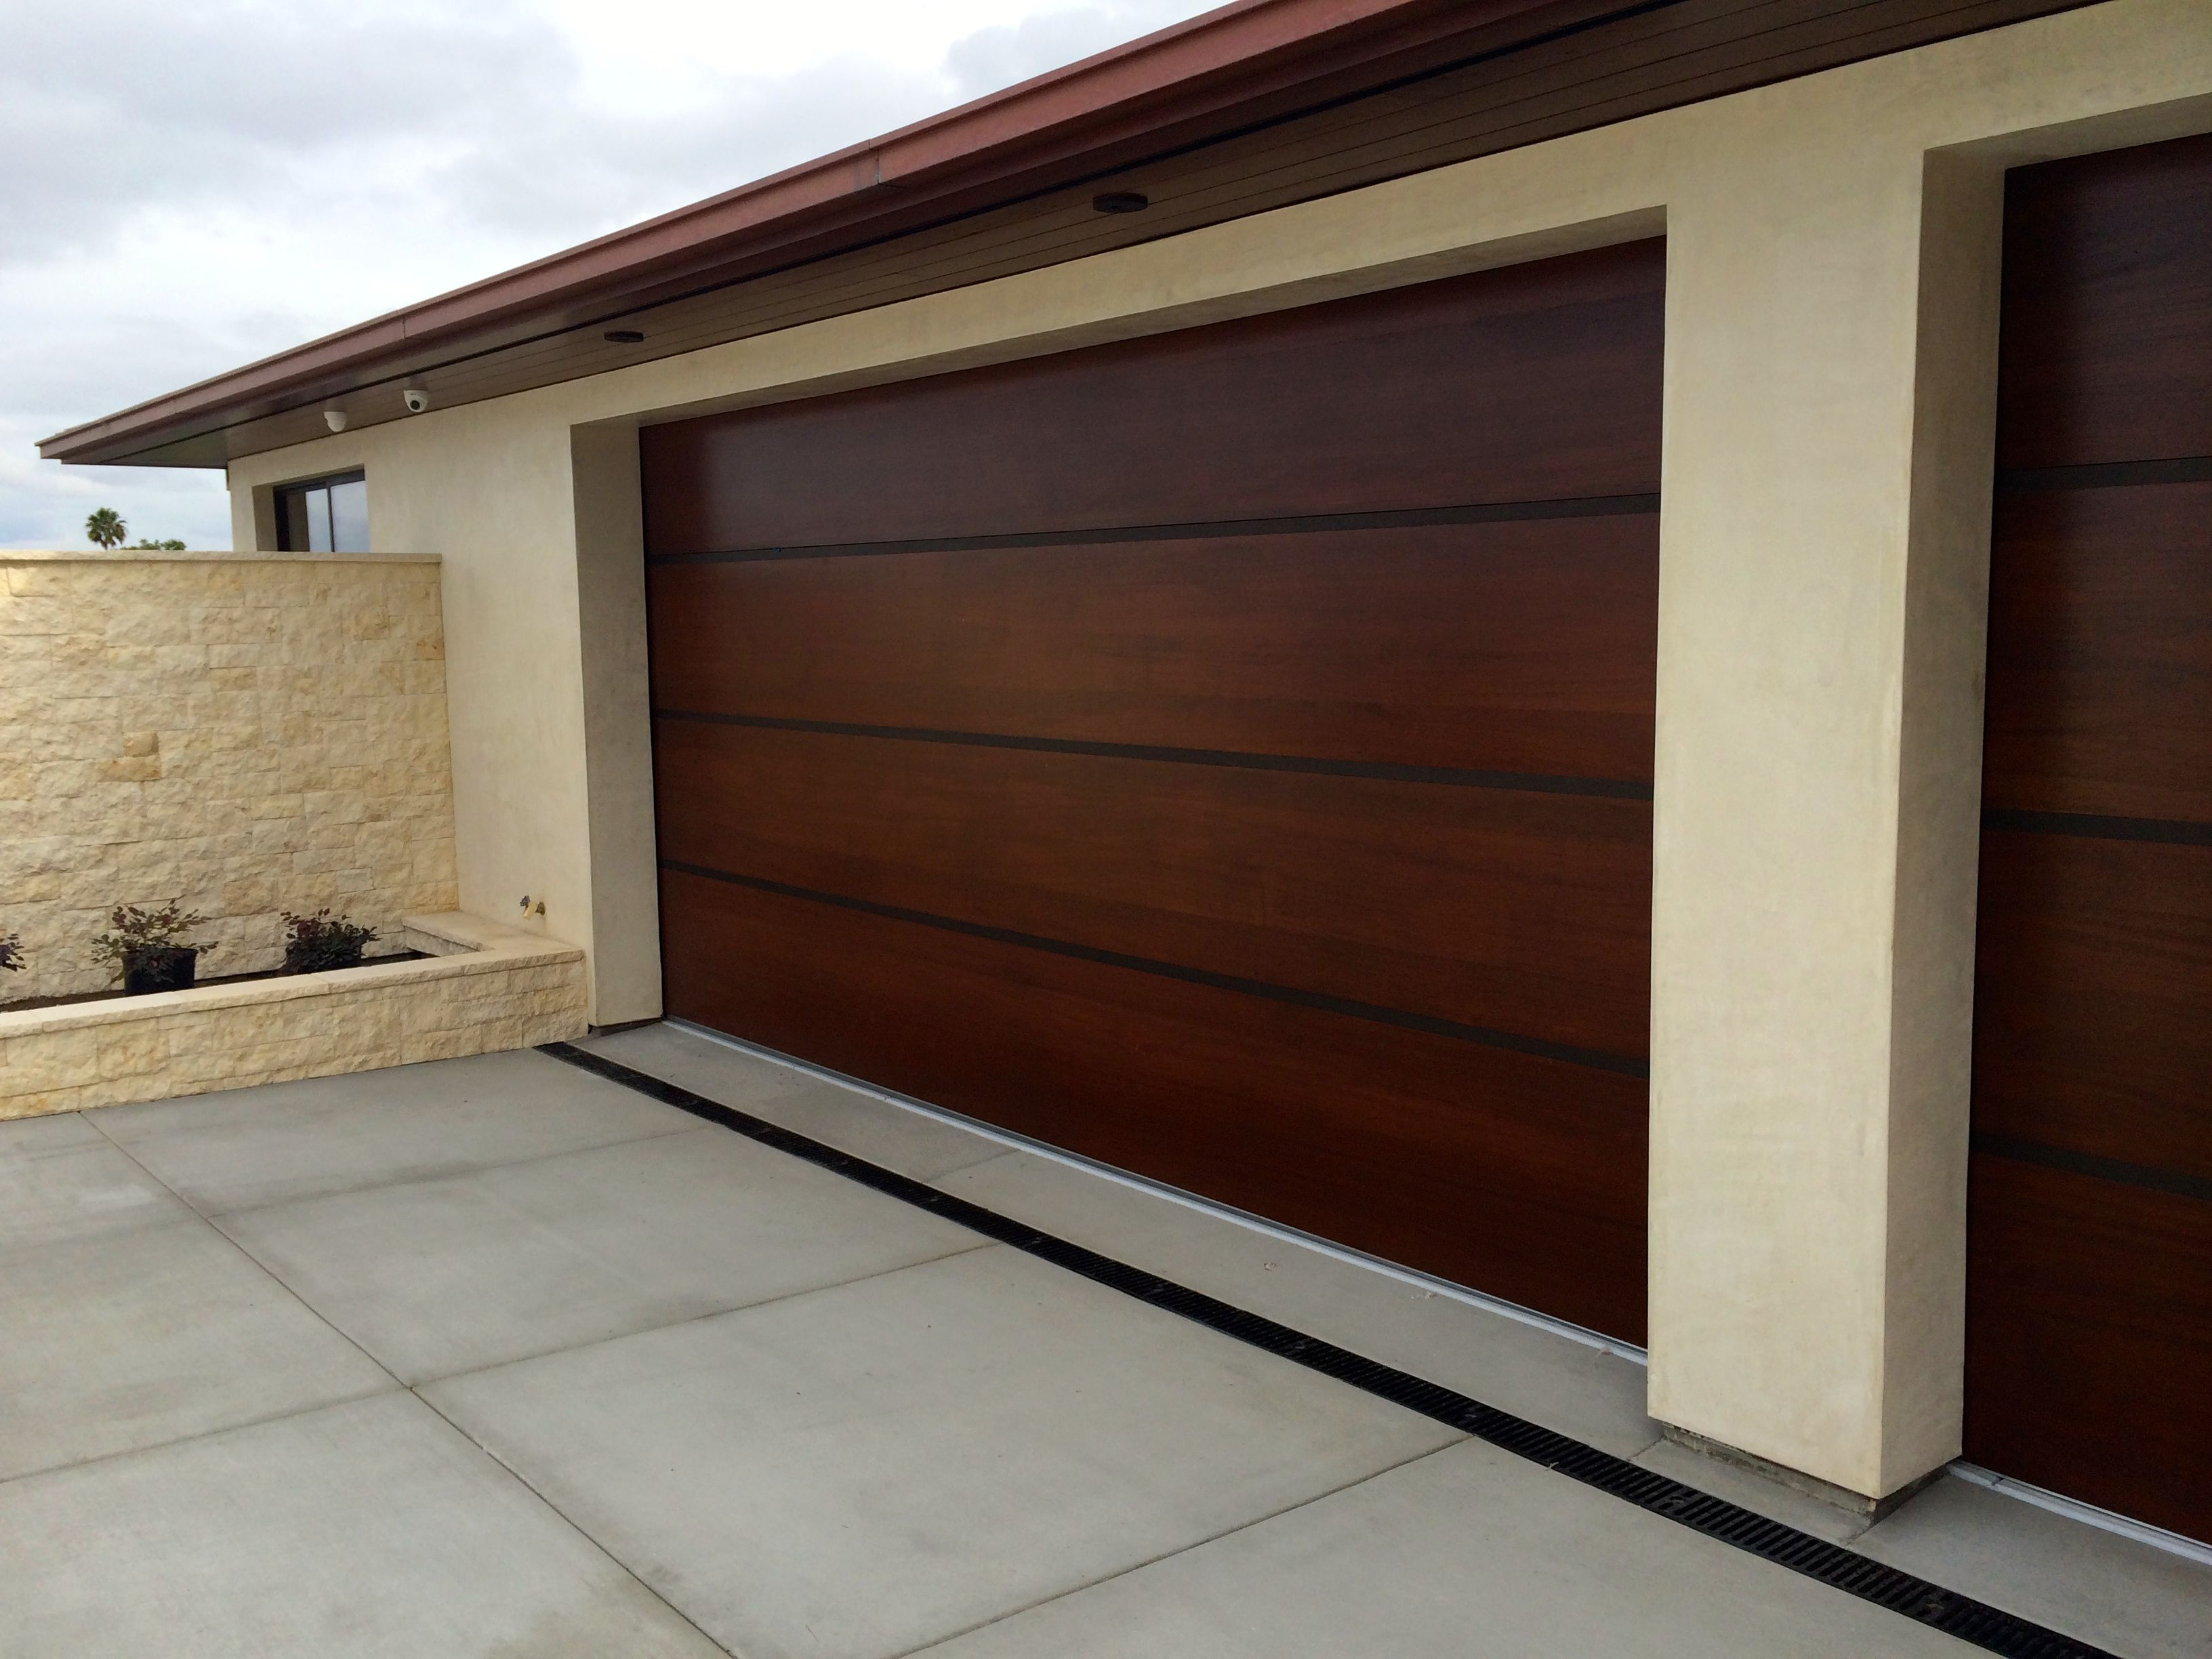 Garage Door Repair Jackson Mi Modern Garage Doors In 2019 Ca Elegant Beach Inspired Kitchen